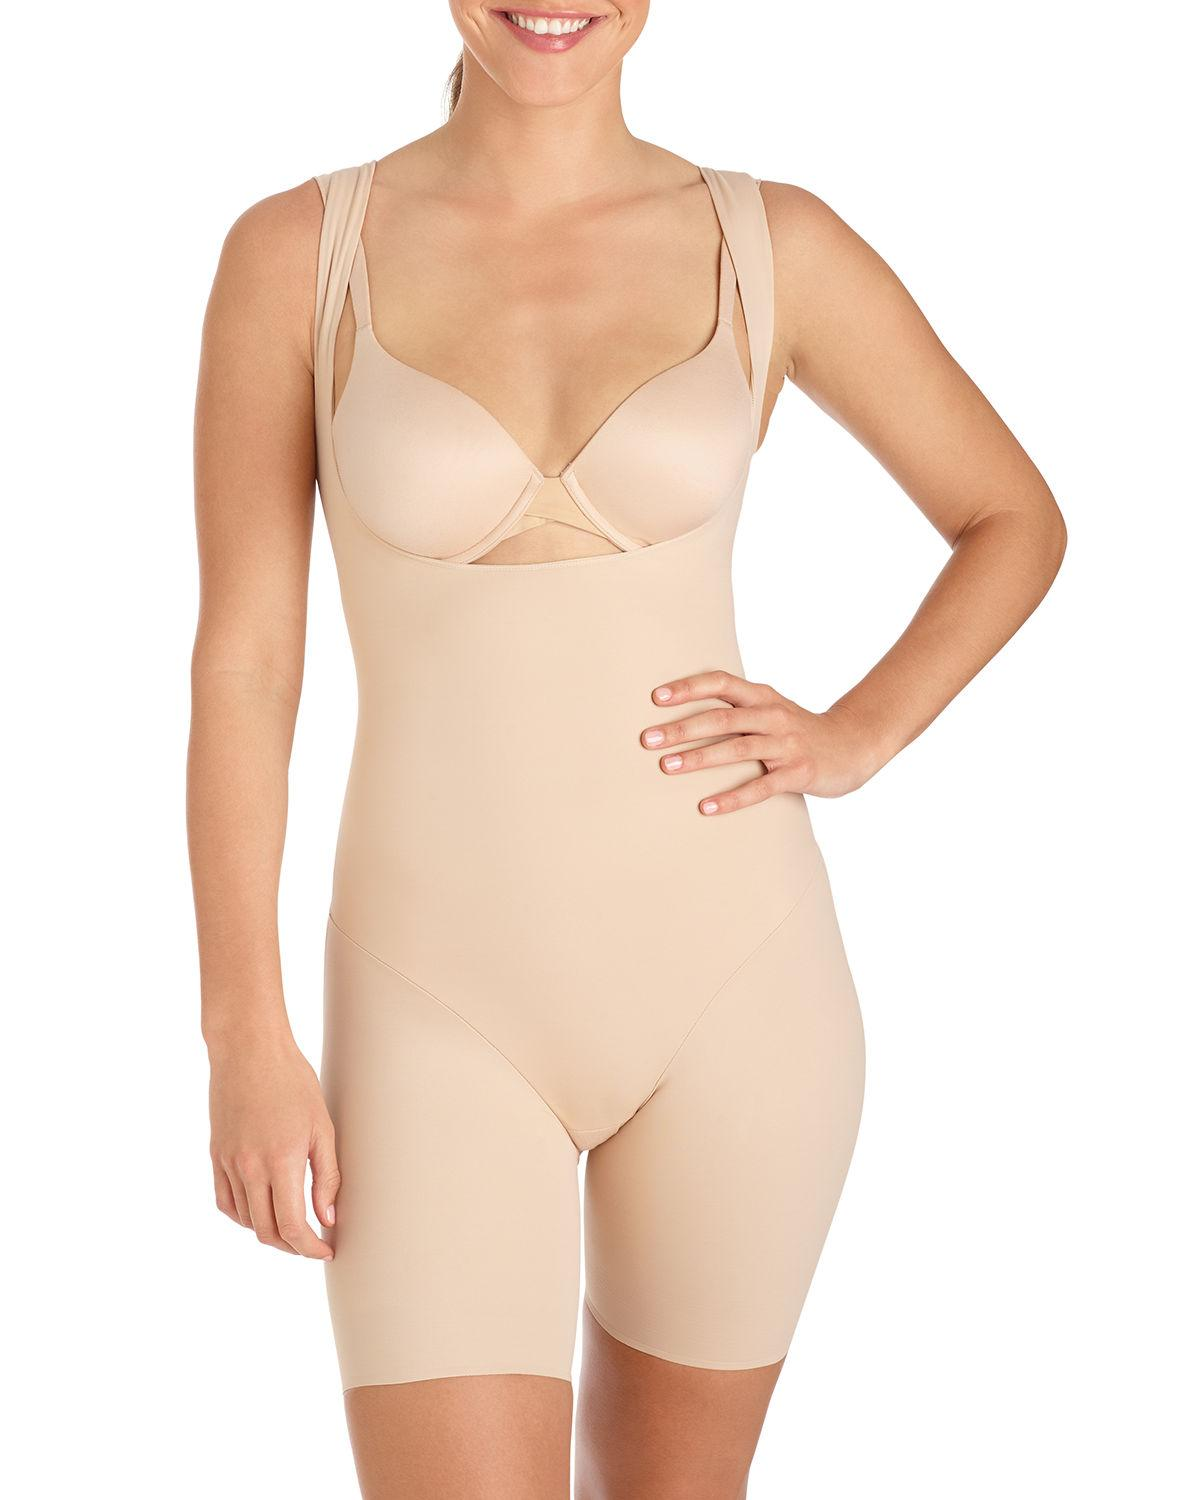 Tc fine intimates Sheer Body Briefer Bodysuit in Natural